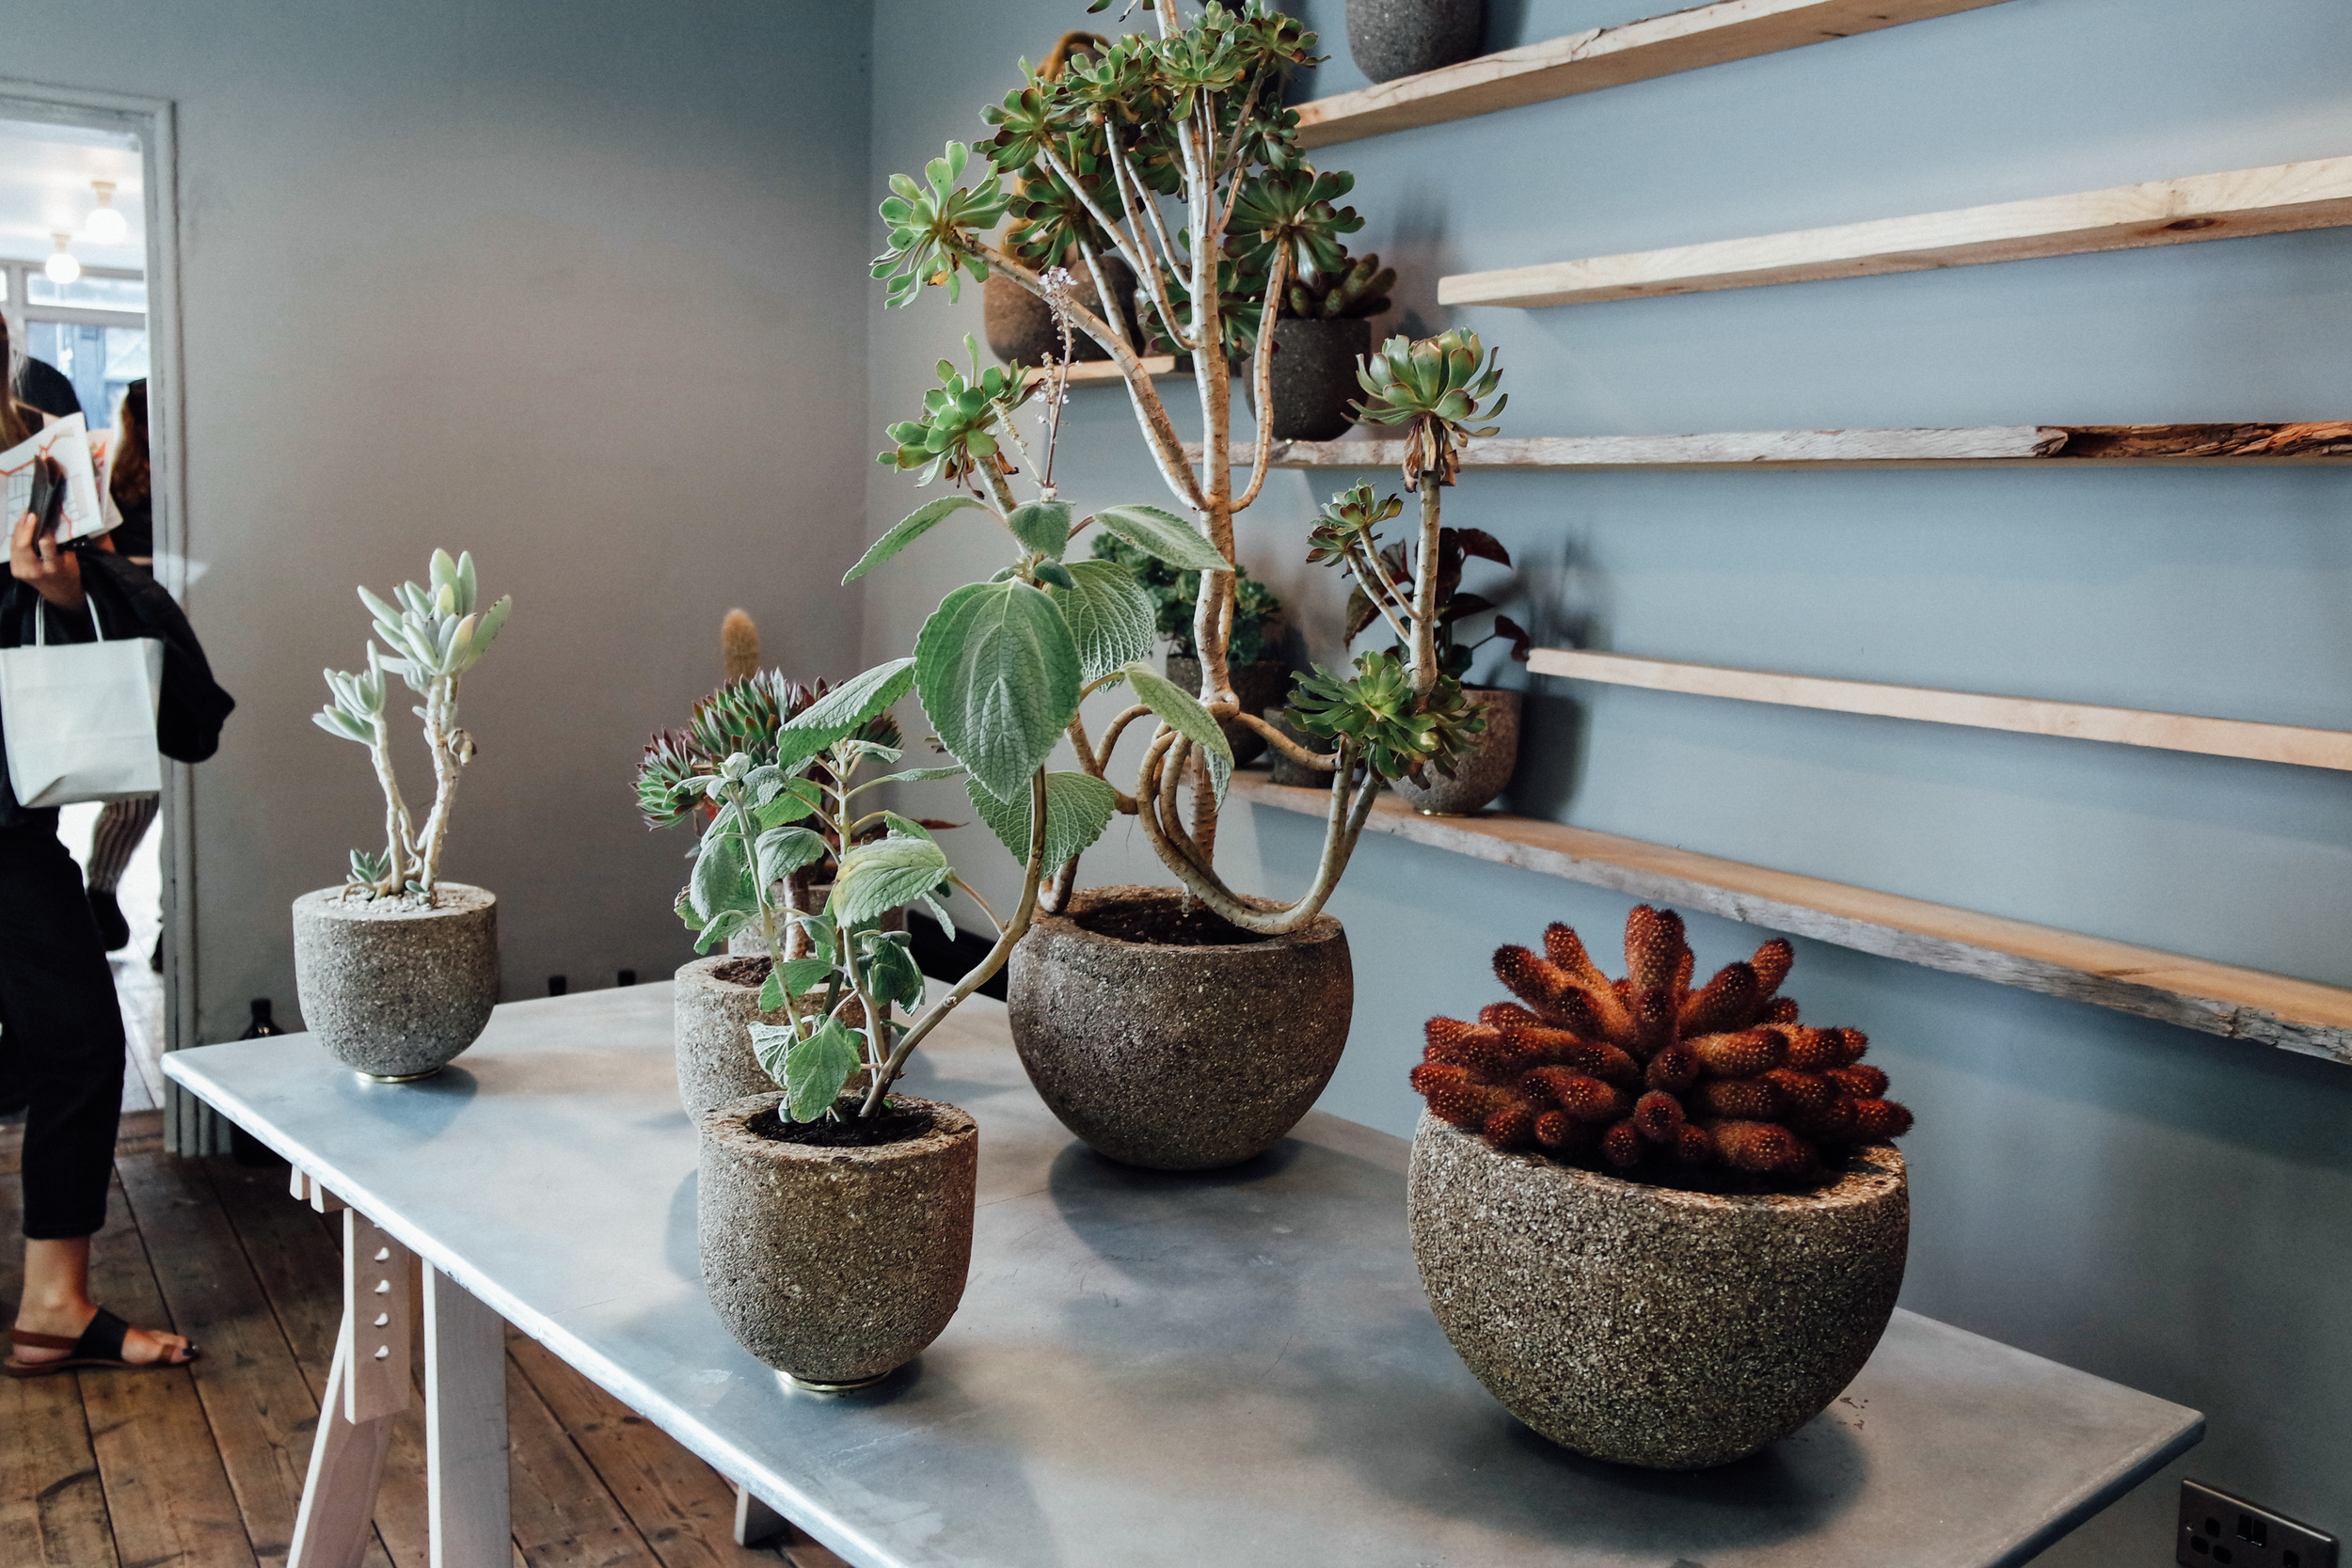 Plants at Aesop